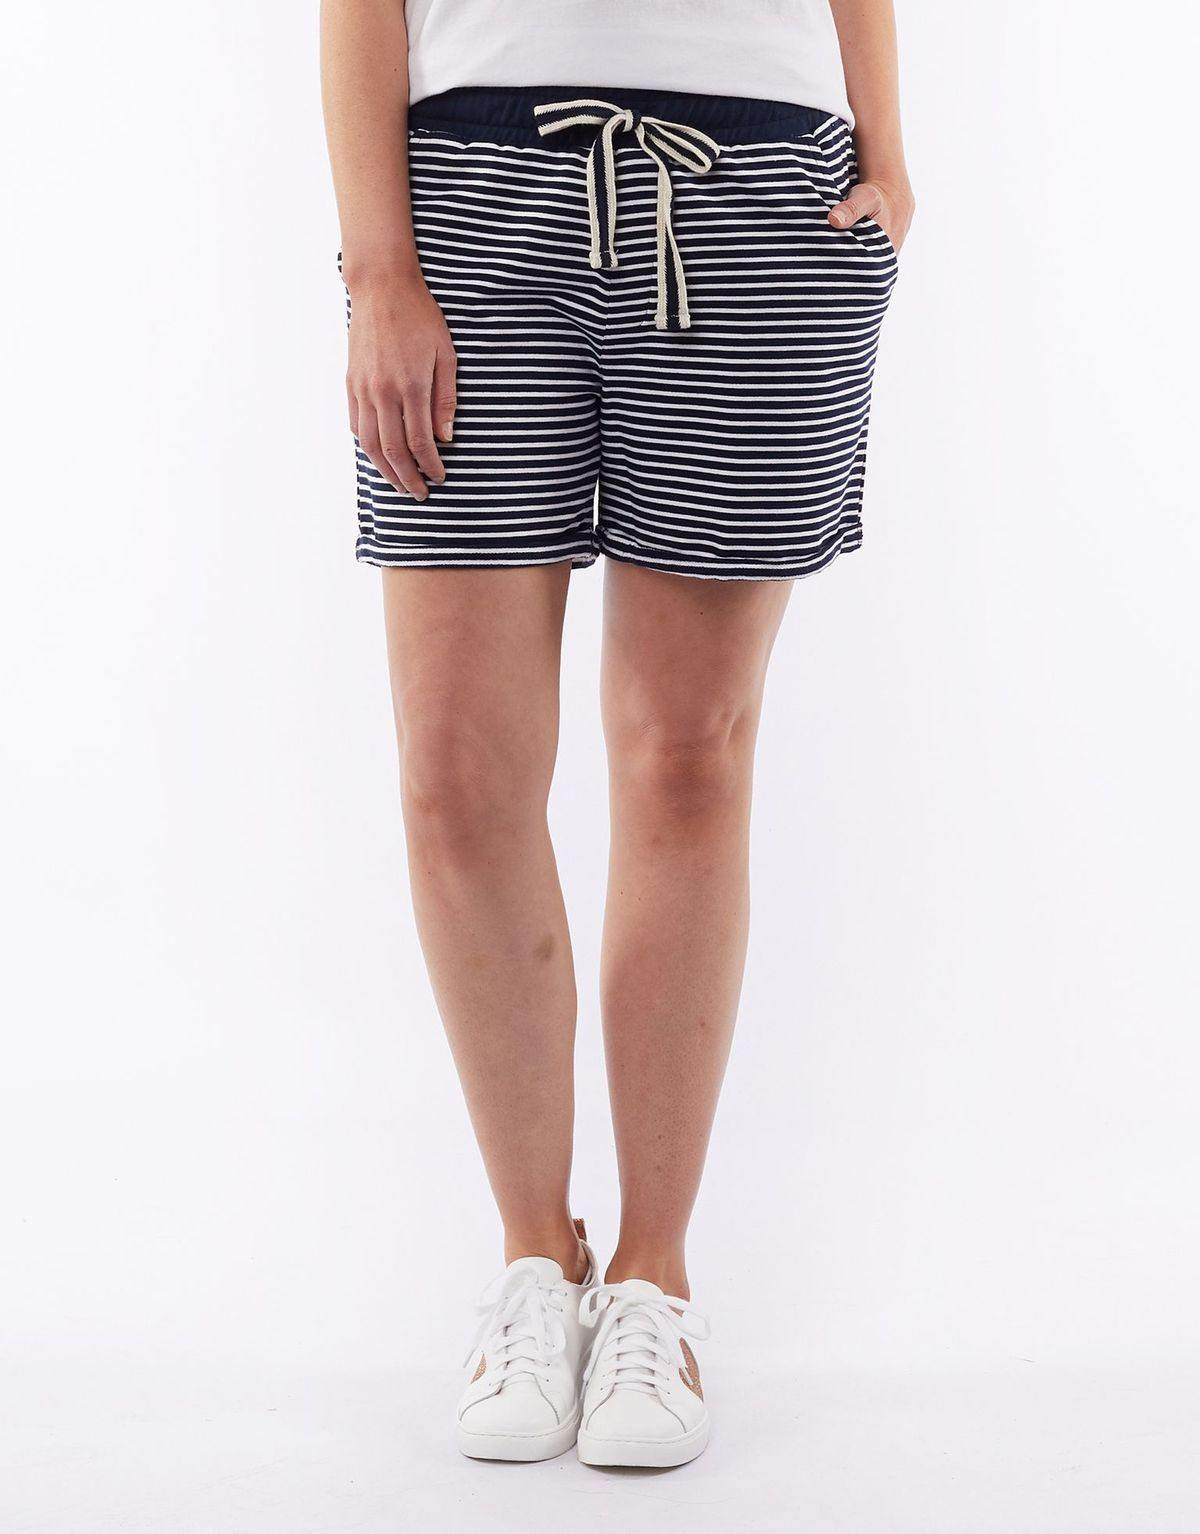 ELM Take a Break Short-N/W Stripe - allaboutagirl